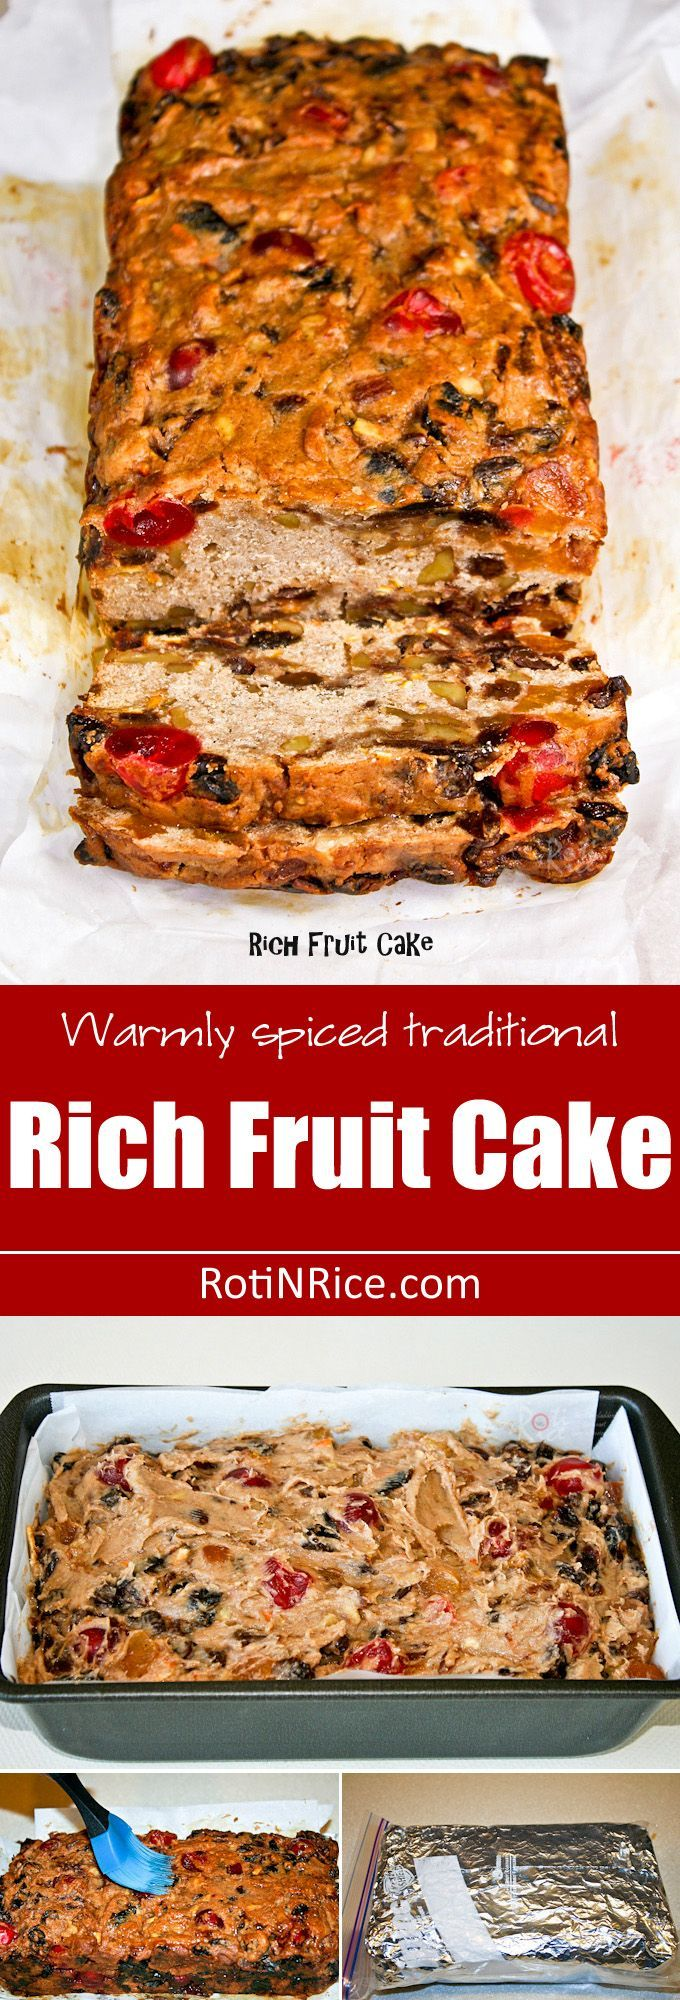 Warmly spiced traditional Rich Fruit Cake studded with dried fruits and nuts. Layers of brandy and sherry keep it moist and flavorful. | http://RotiNRice.com